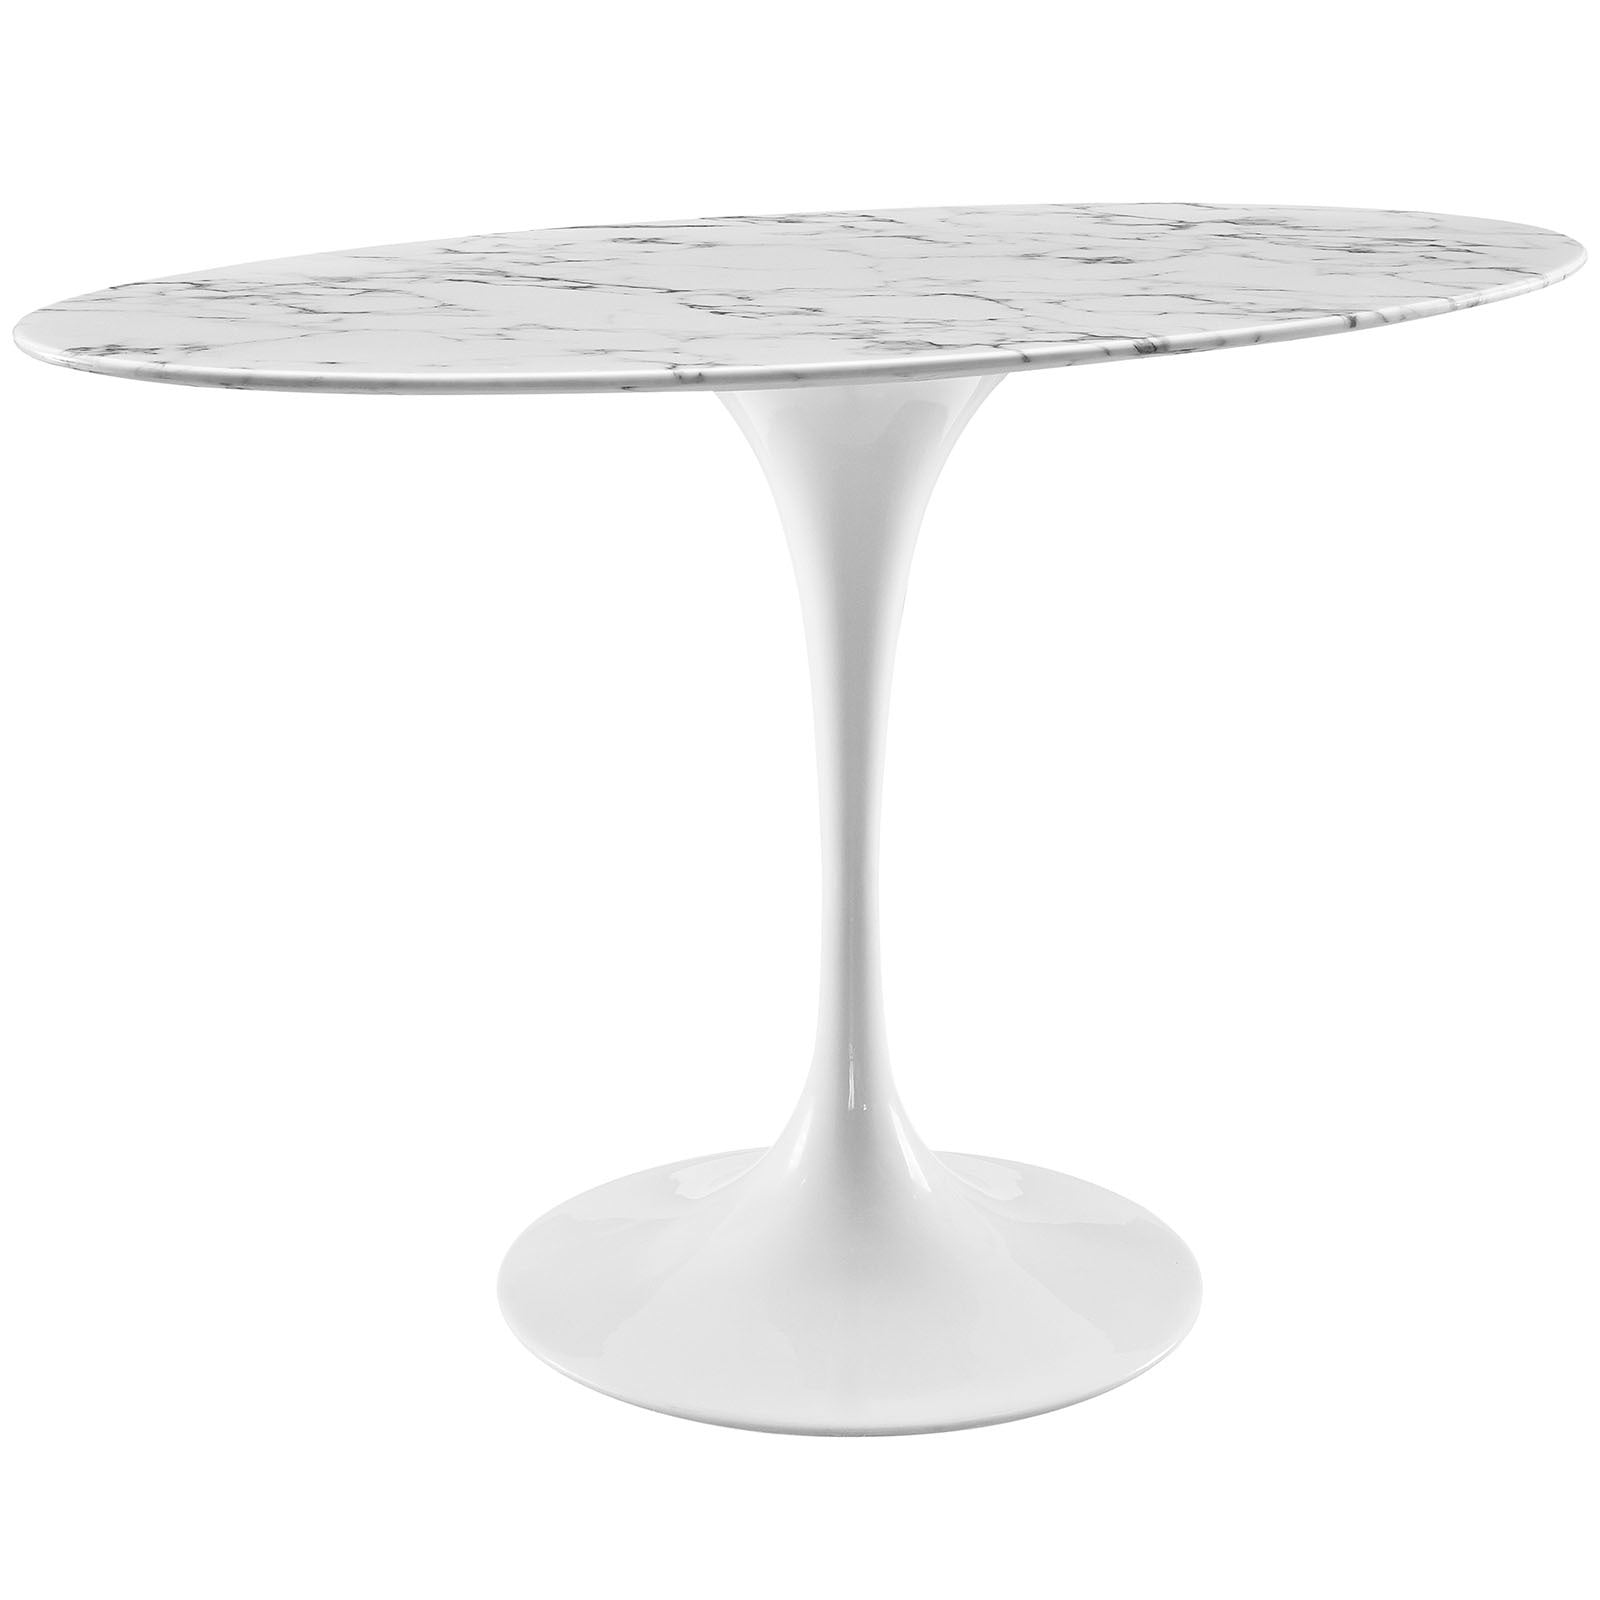 Saarinen Tulip Style OvalShaped Artificial Marble Dining Table - White tulip table 48